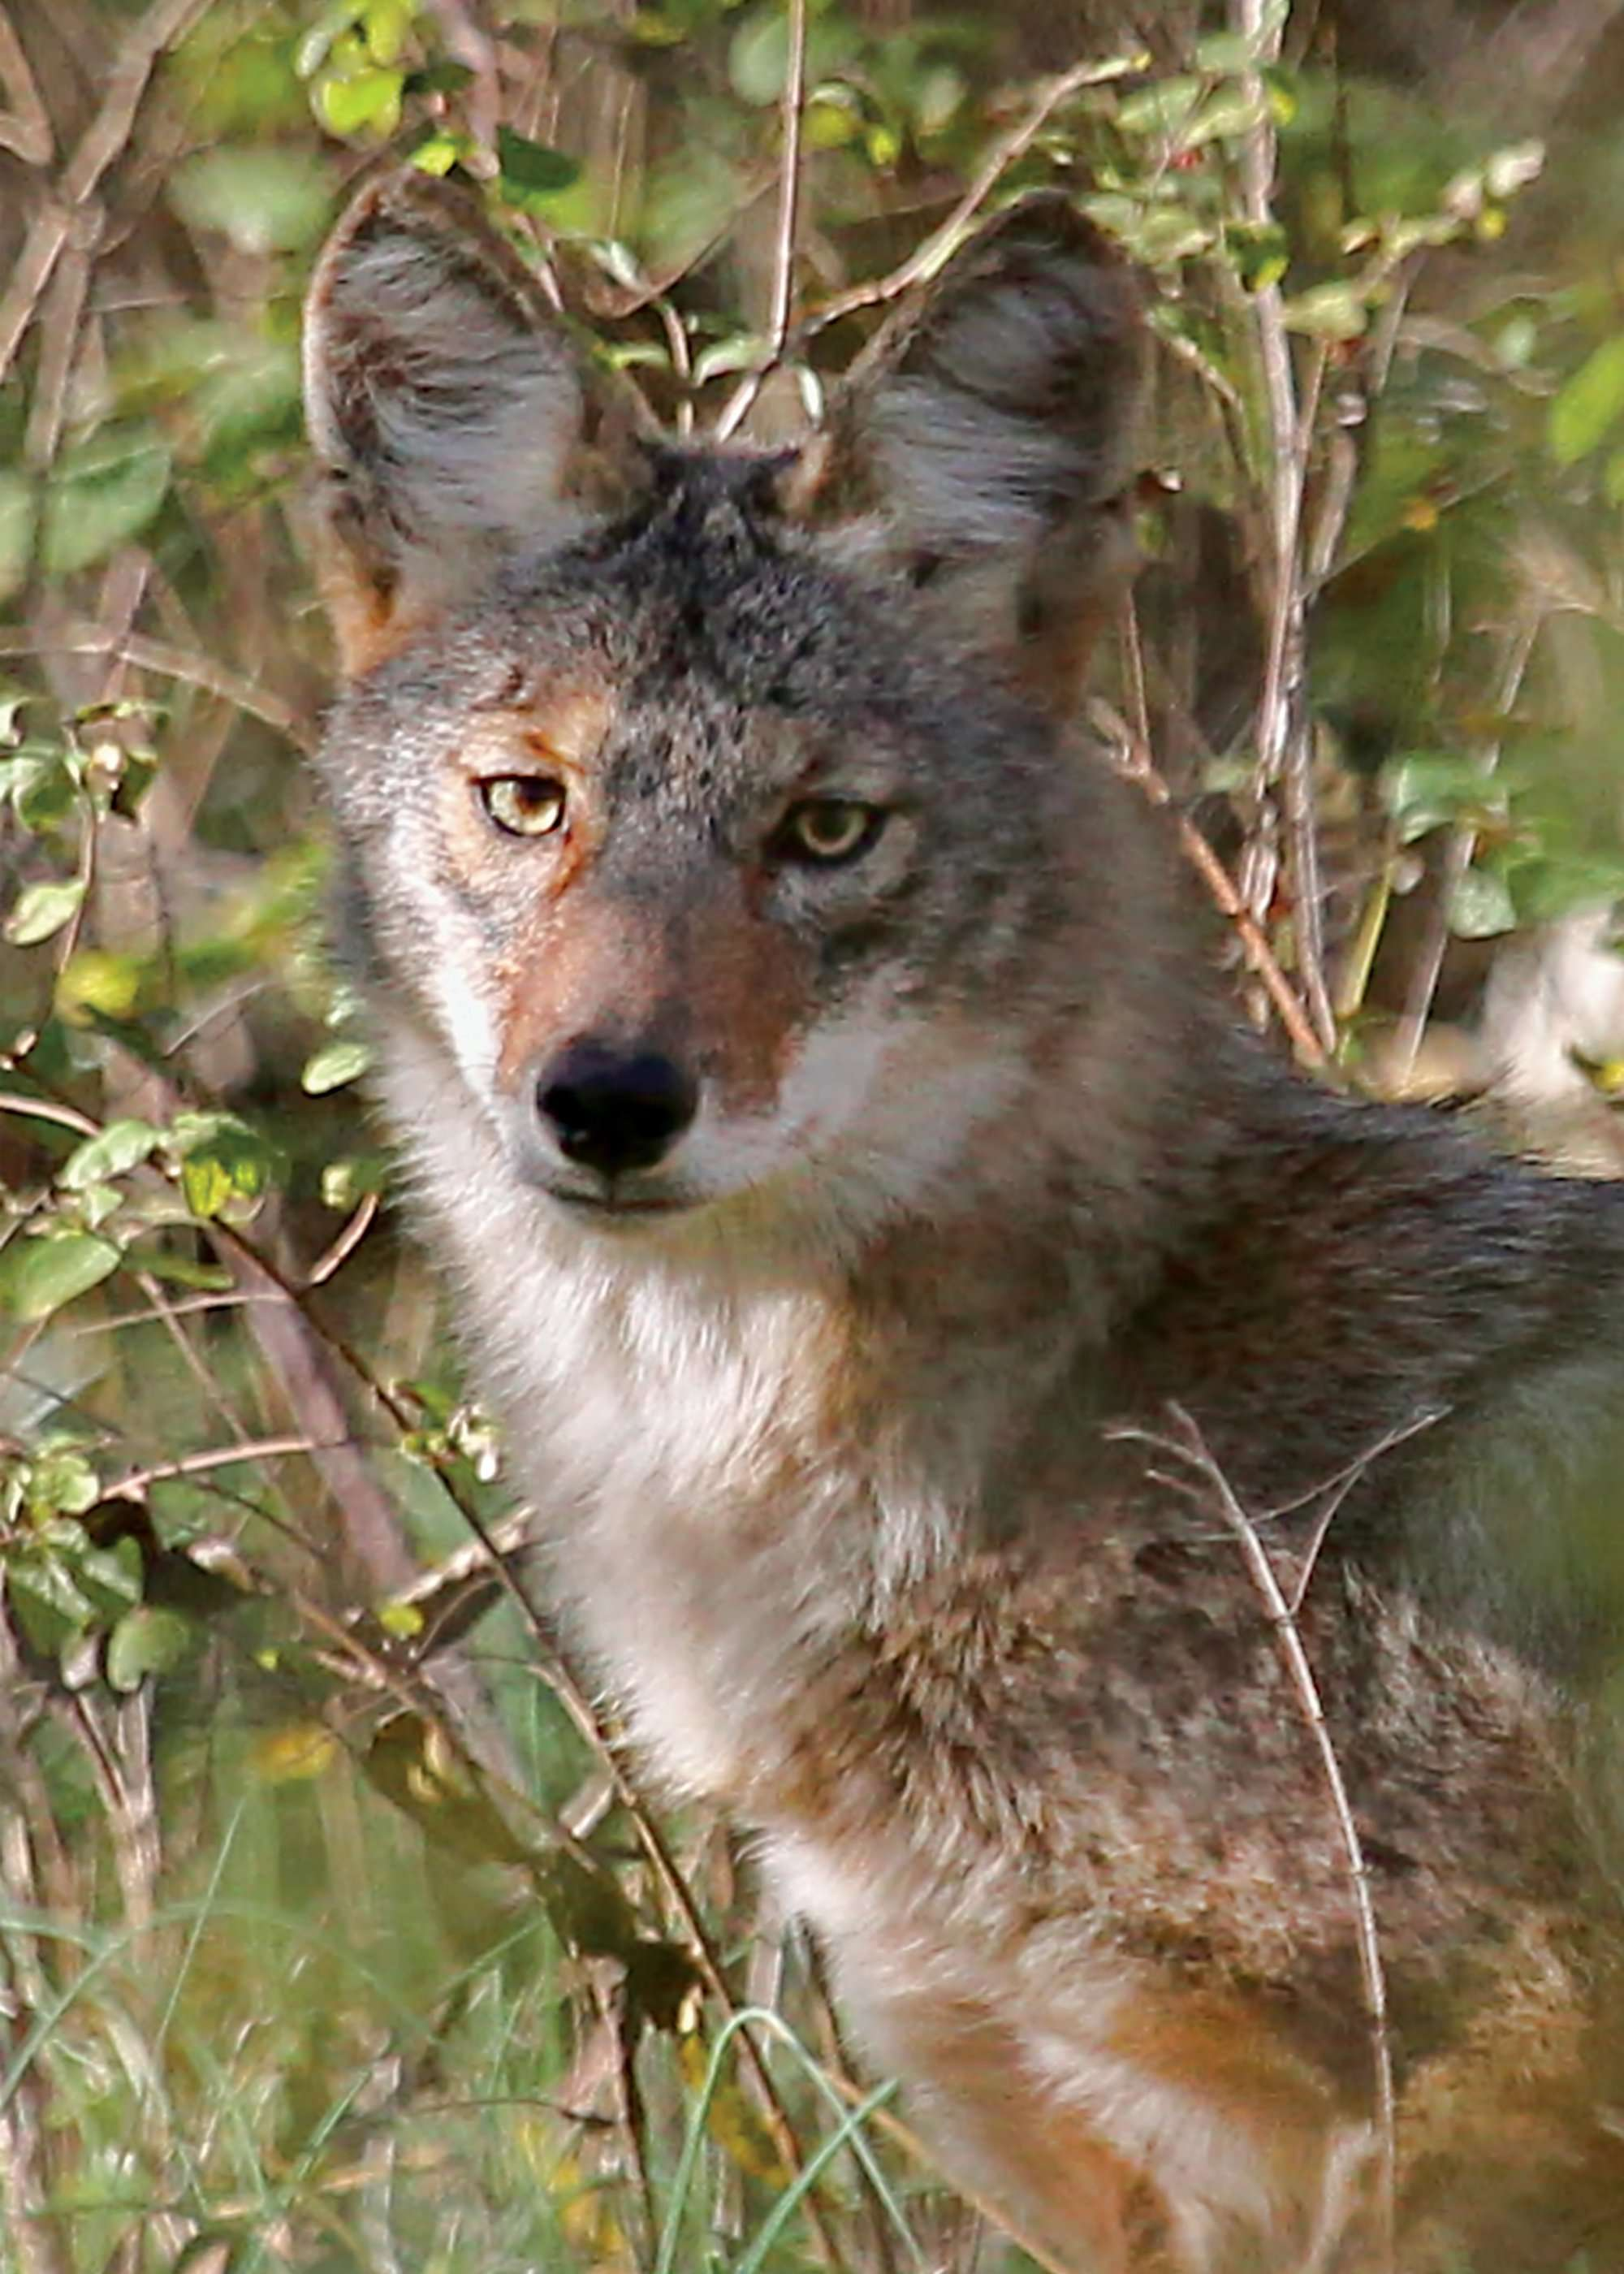 There, Then Gone - Coyote Note Card in Celebrate Nature 8 & 16-Card Box Sets